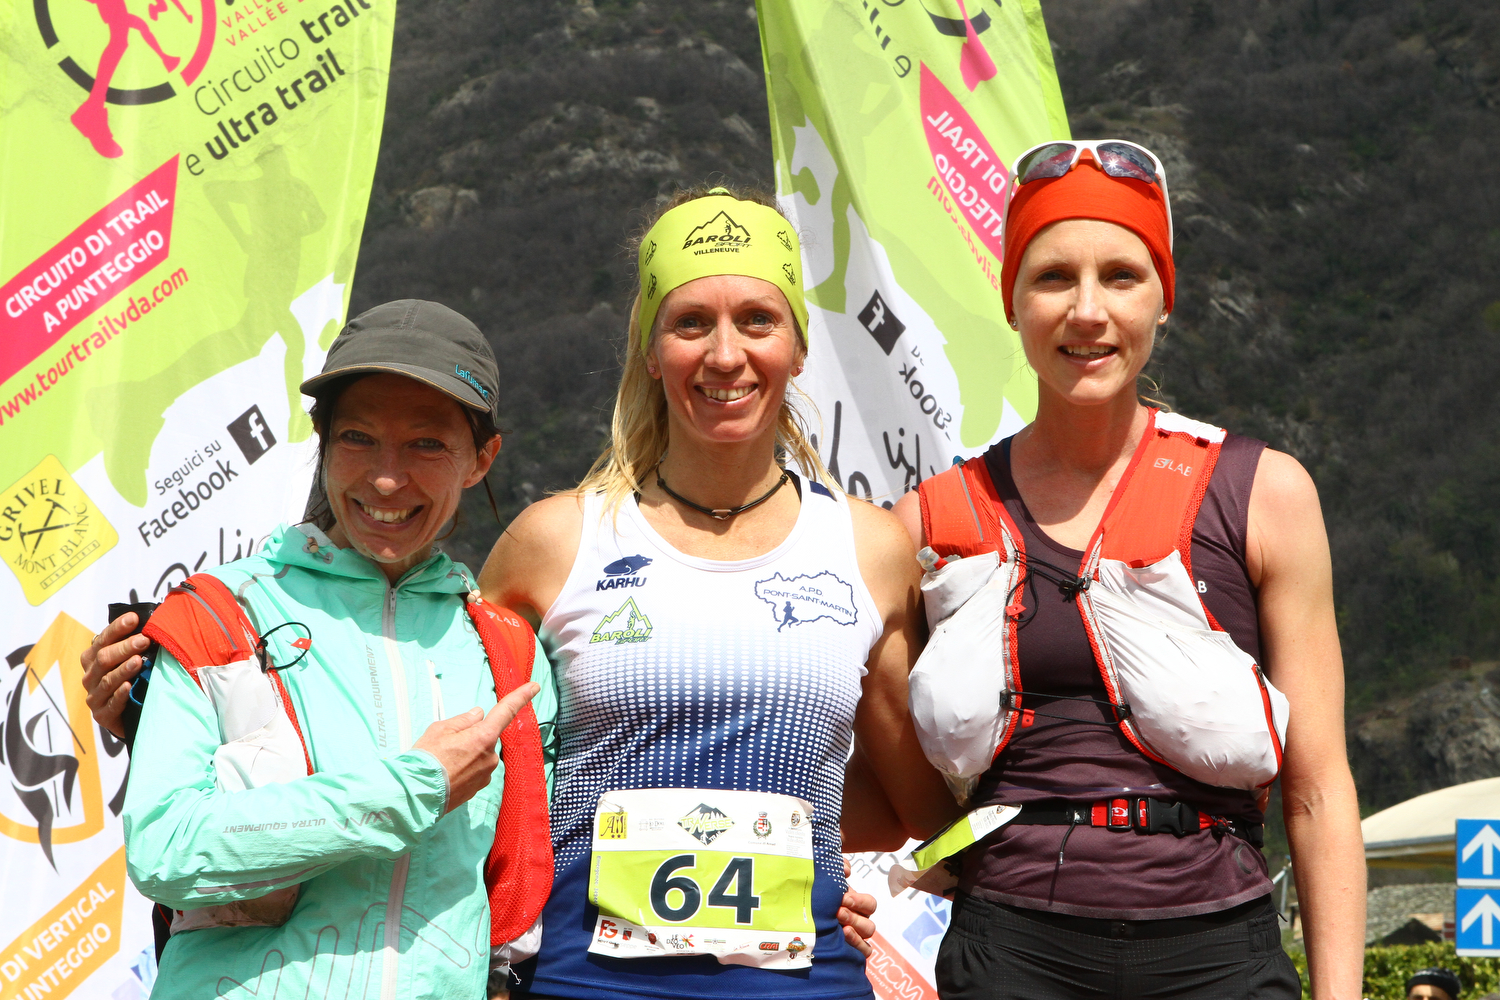 Podio femminile Traverse Trail Sonia Glarey Enrica Perico Sonia Locatelli